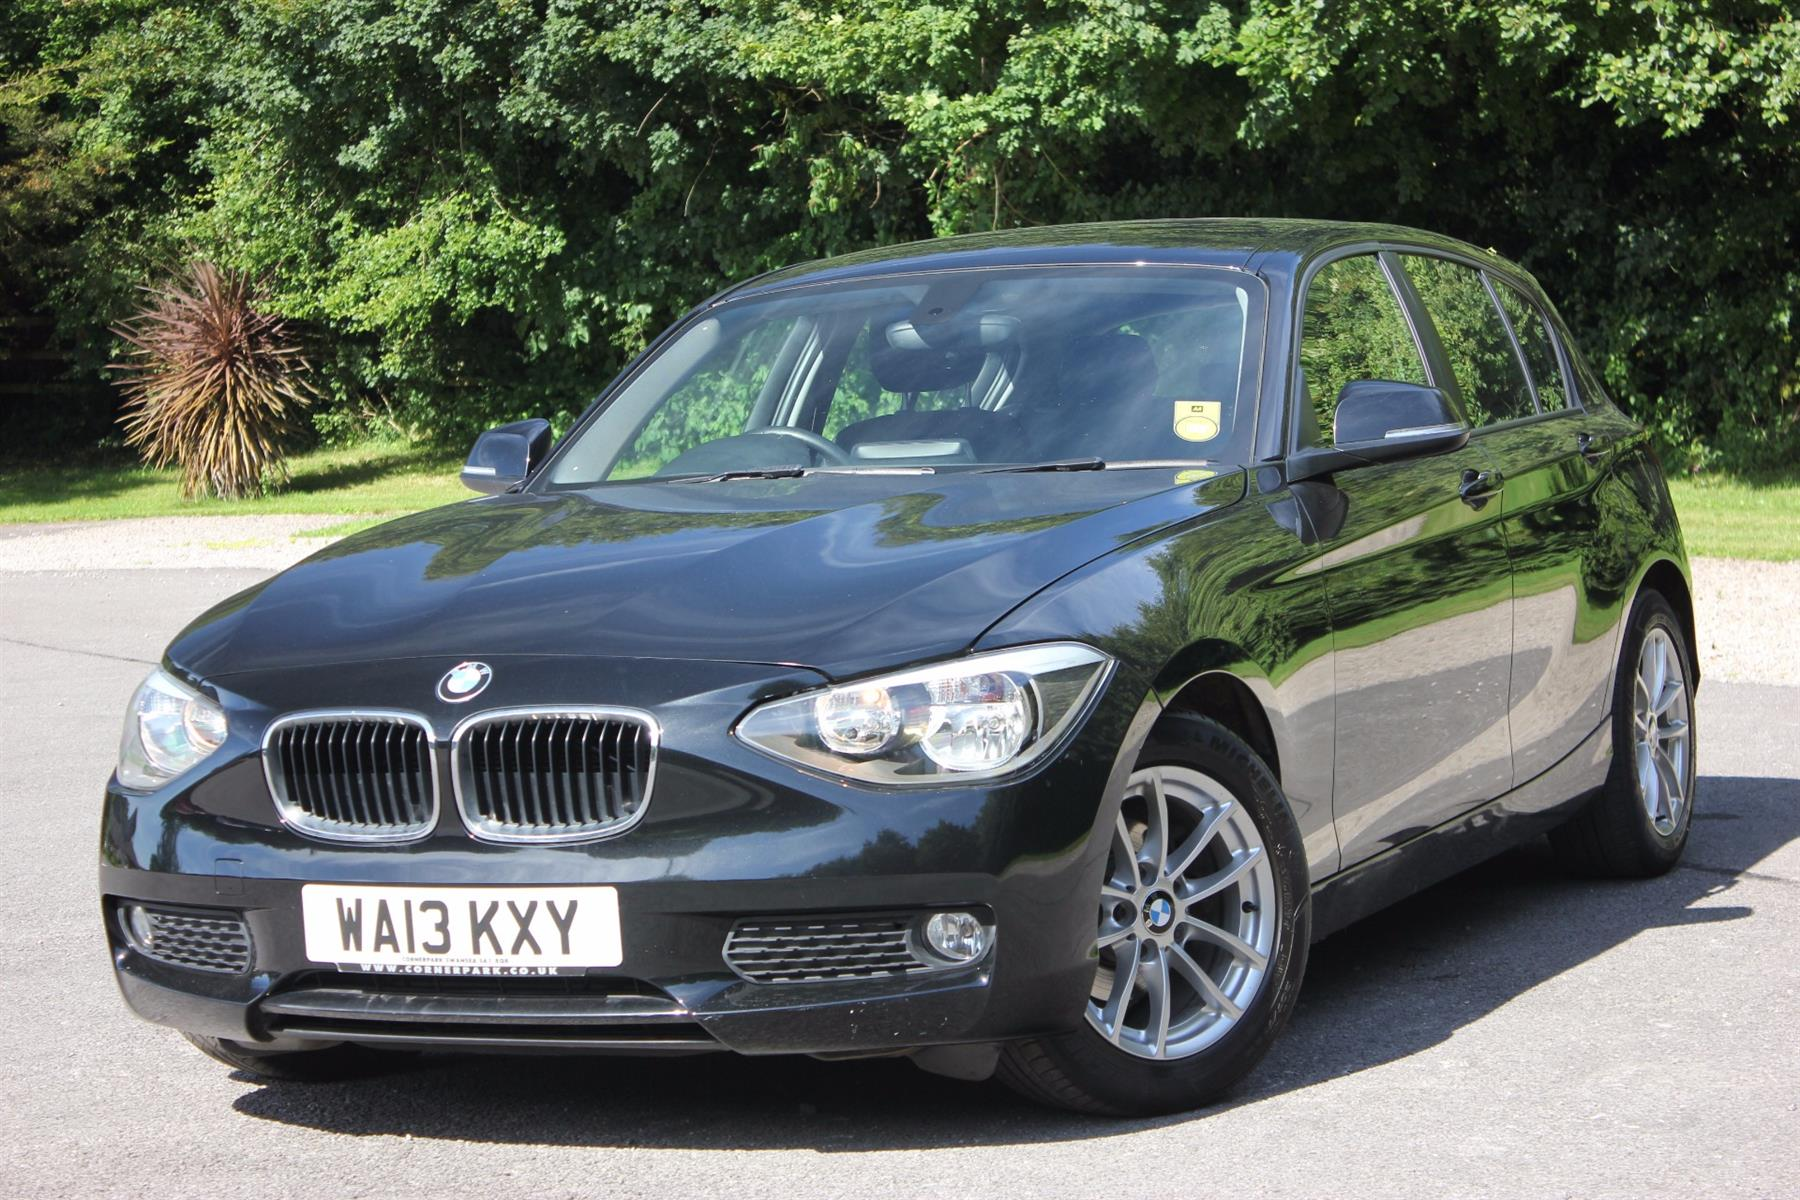 BMW 1 series 116d 2013 photo - 9